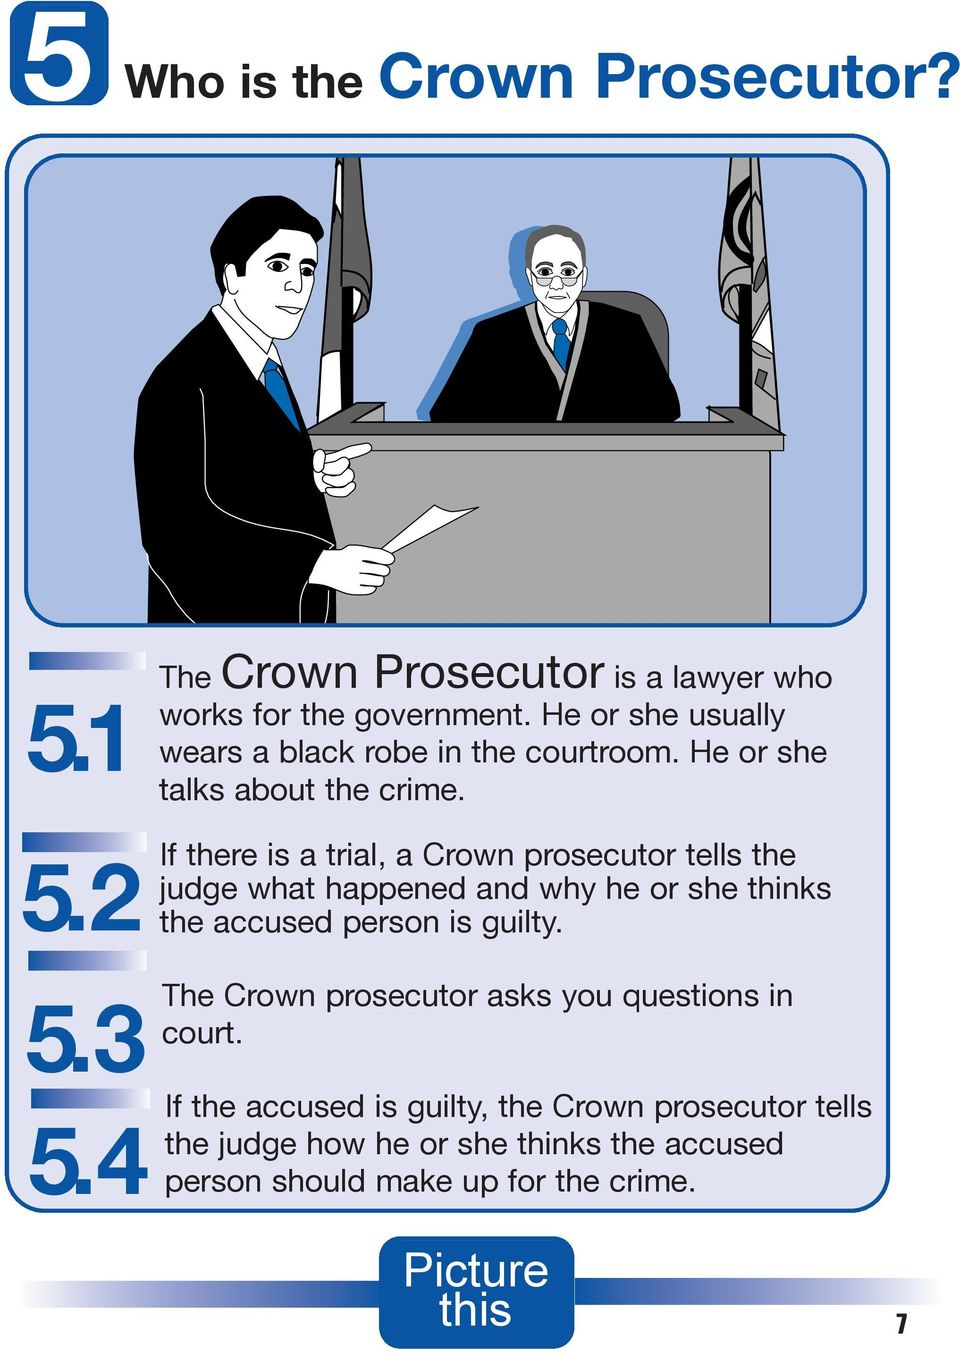 If there is a trial, a Crown prosecutor tells the judge what happened and why he or she thinks the accused person is guilty.